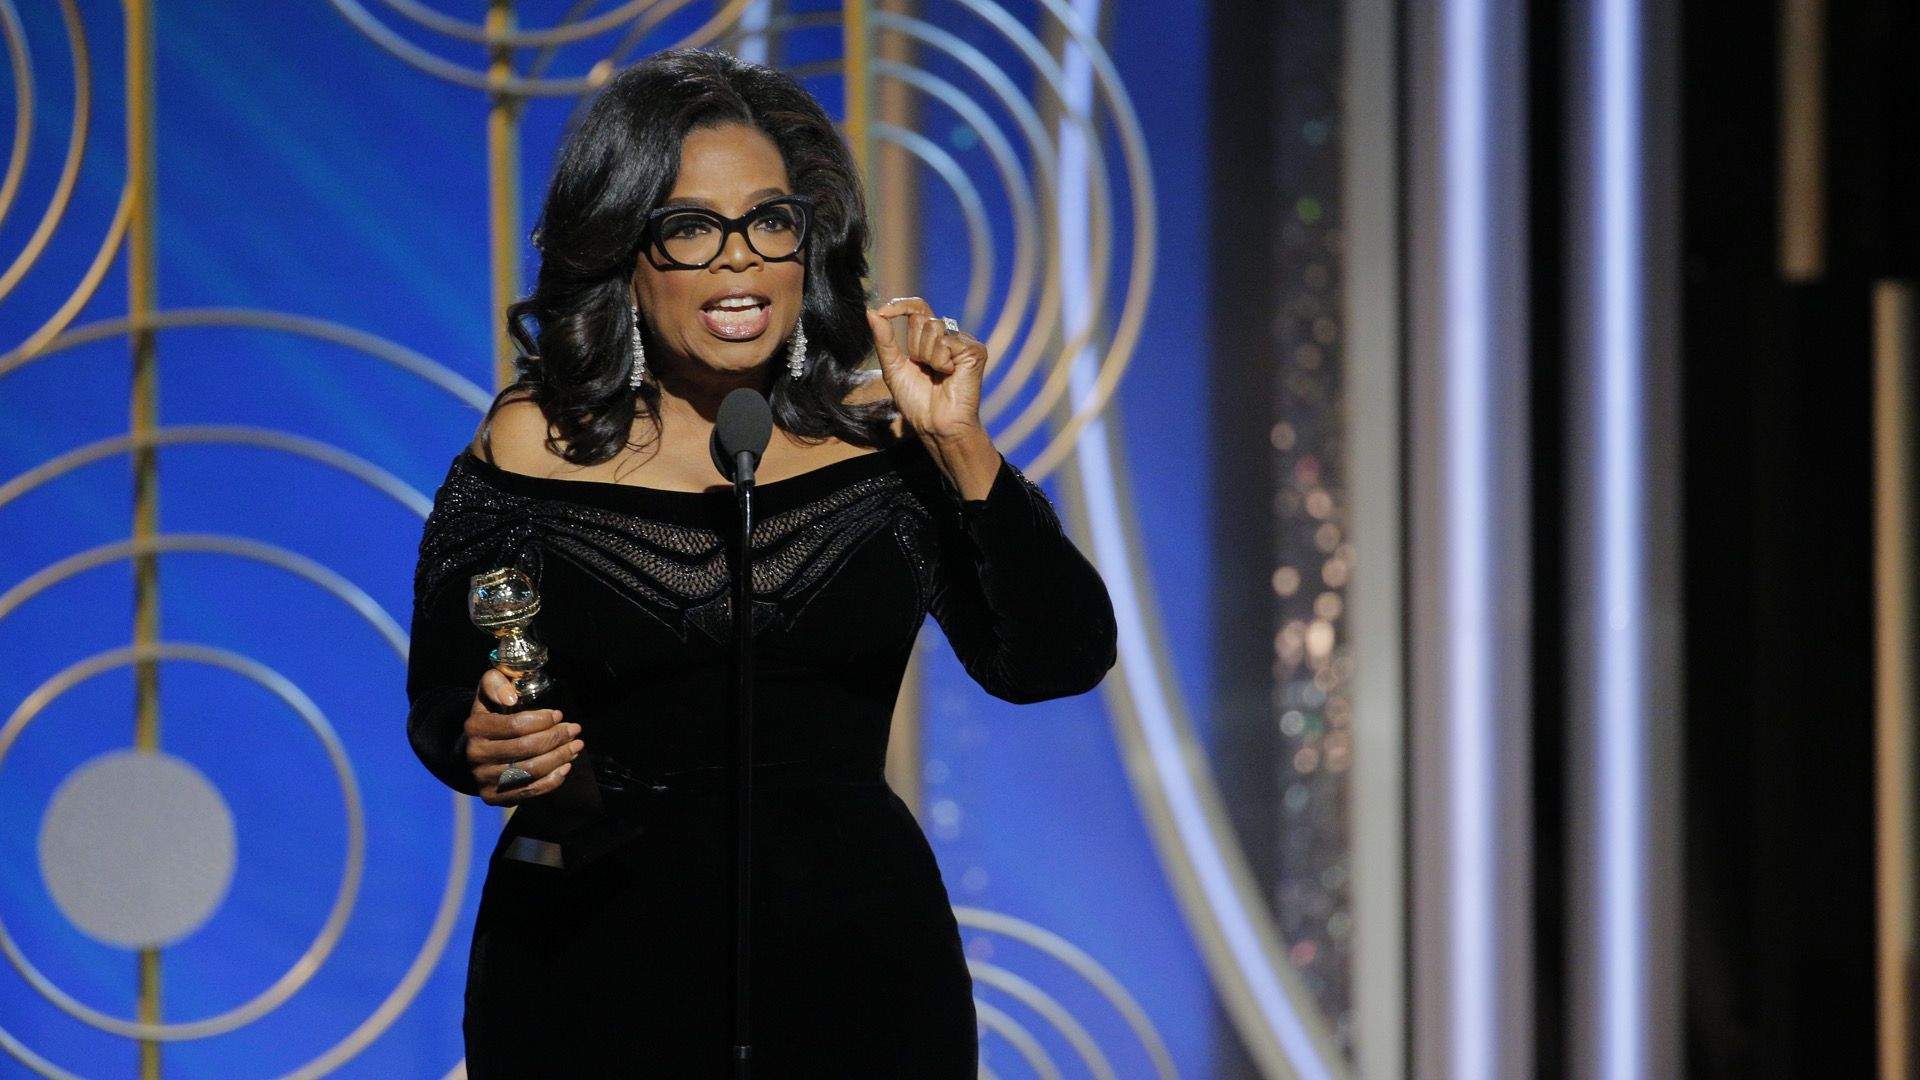 Oprah Winfrey accepting the Golden Globes' Cecil B. DeMille Award